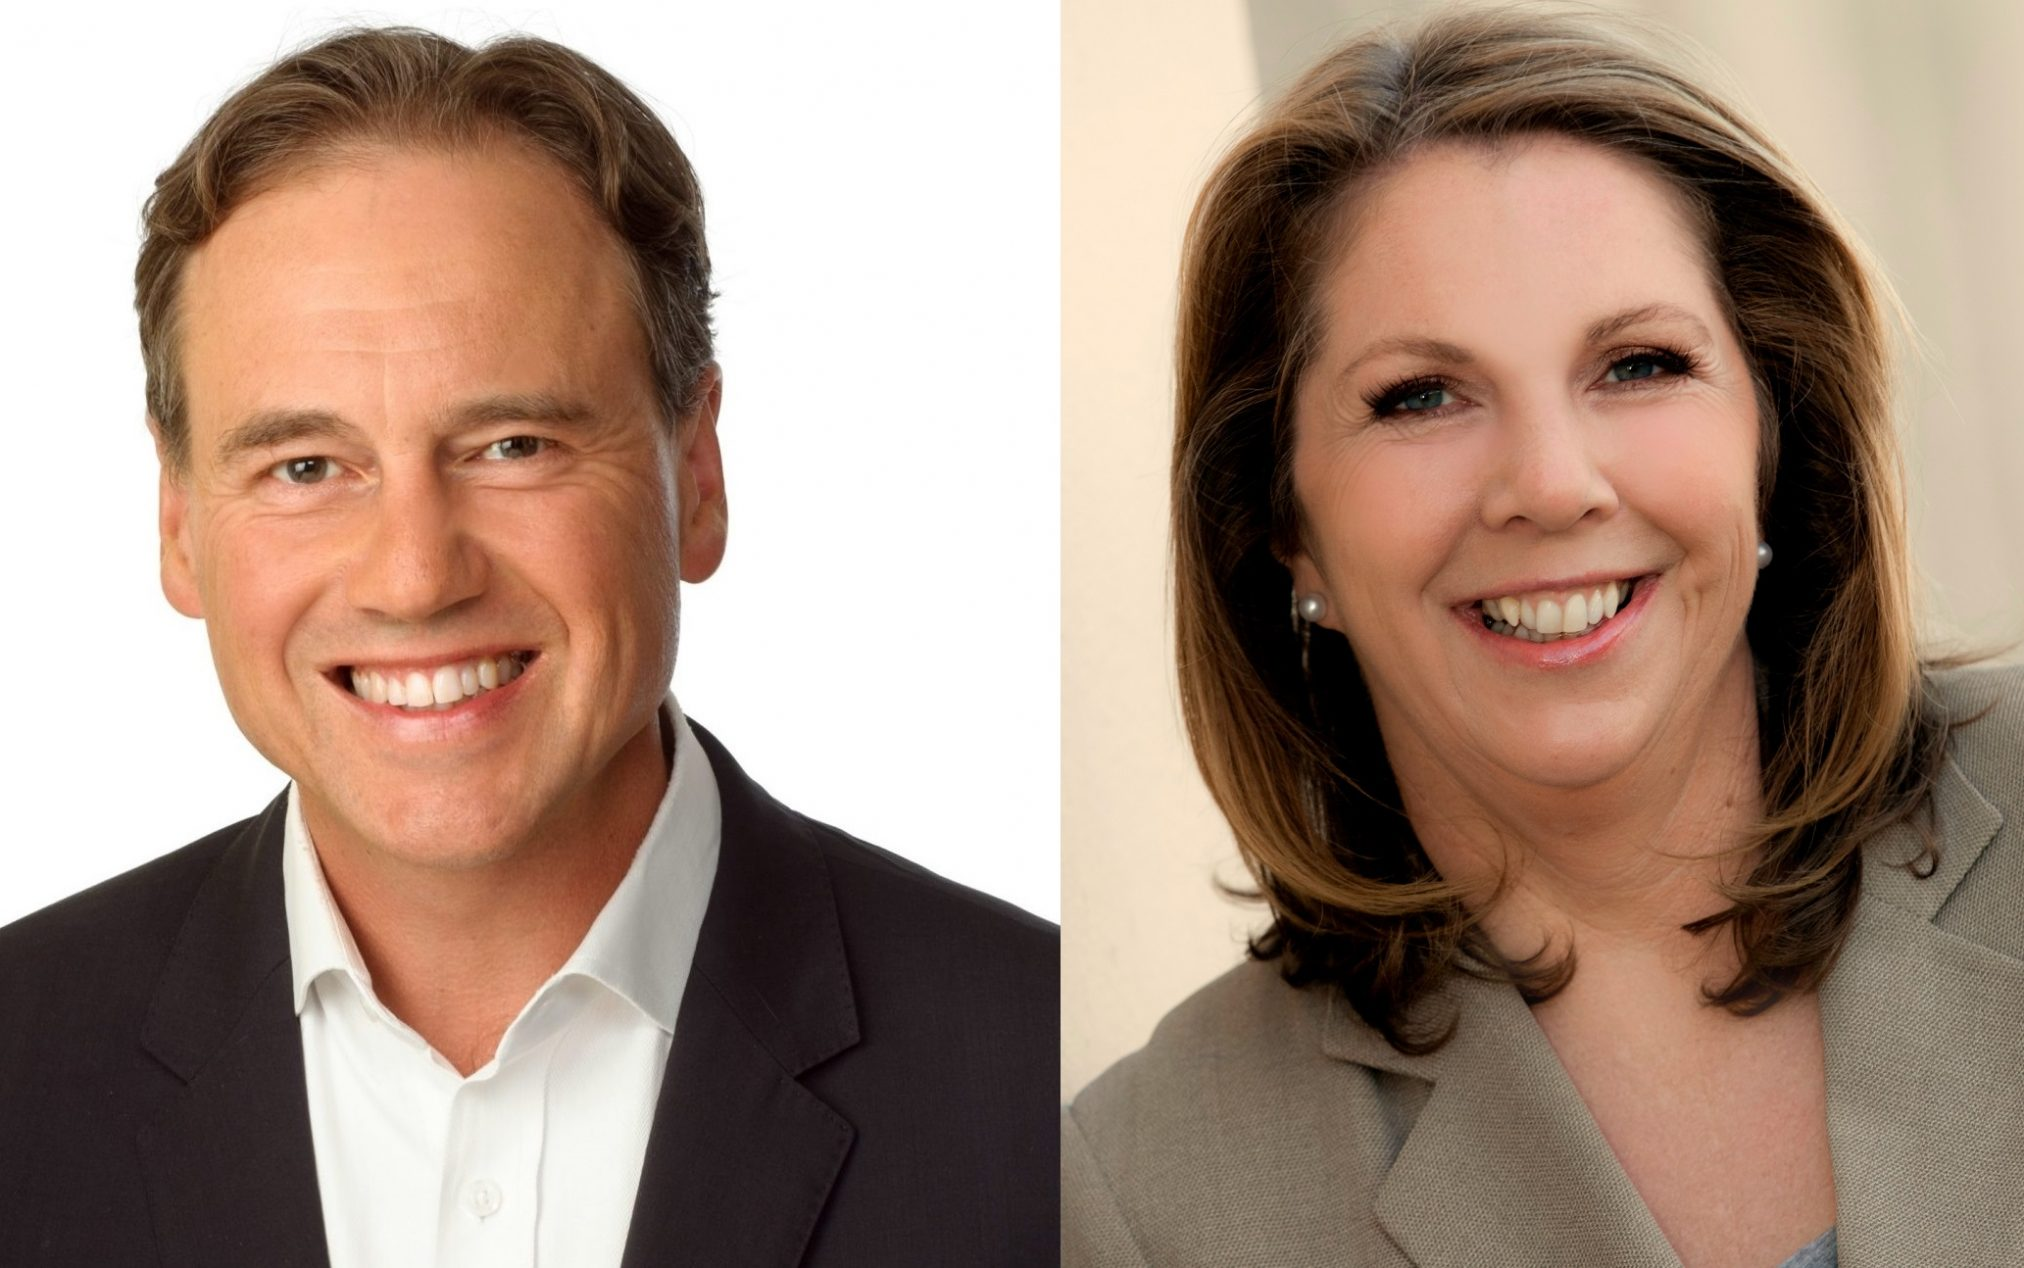 Health Minister Greg Hunt (left) and Opposition Health Minister Catherine King (right).